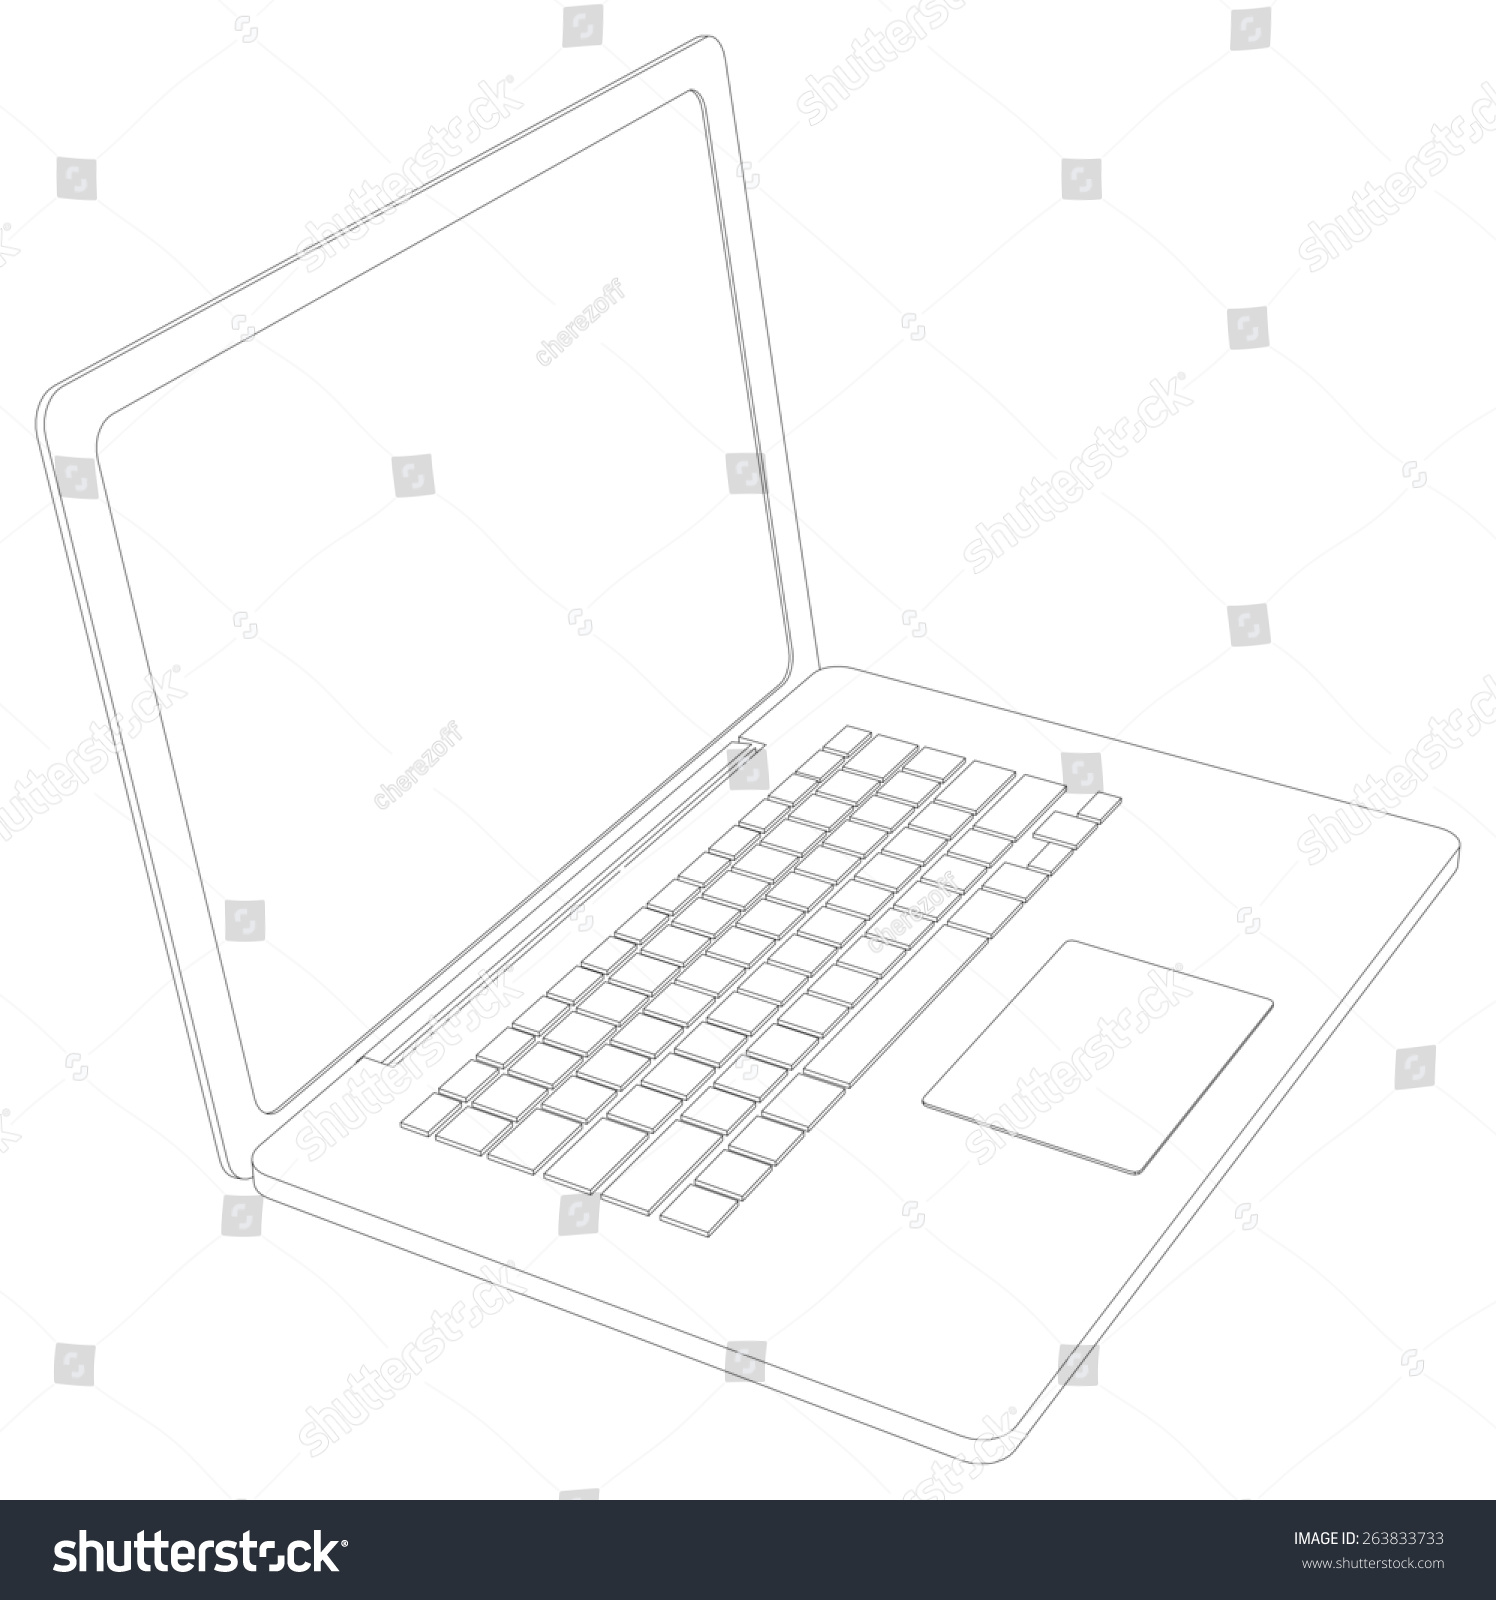 Drawing Wireframe Open Laptop Perspective View Stock Photo (Photo ...